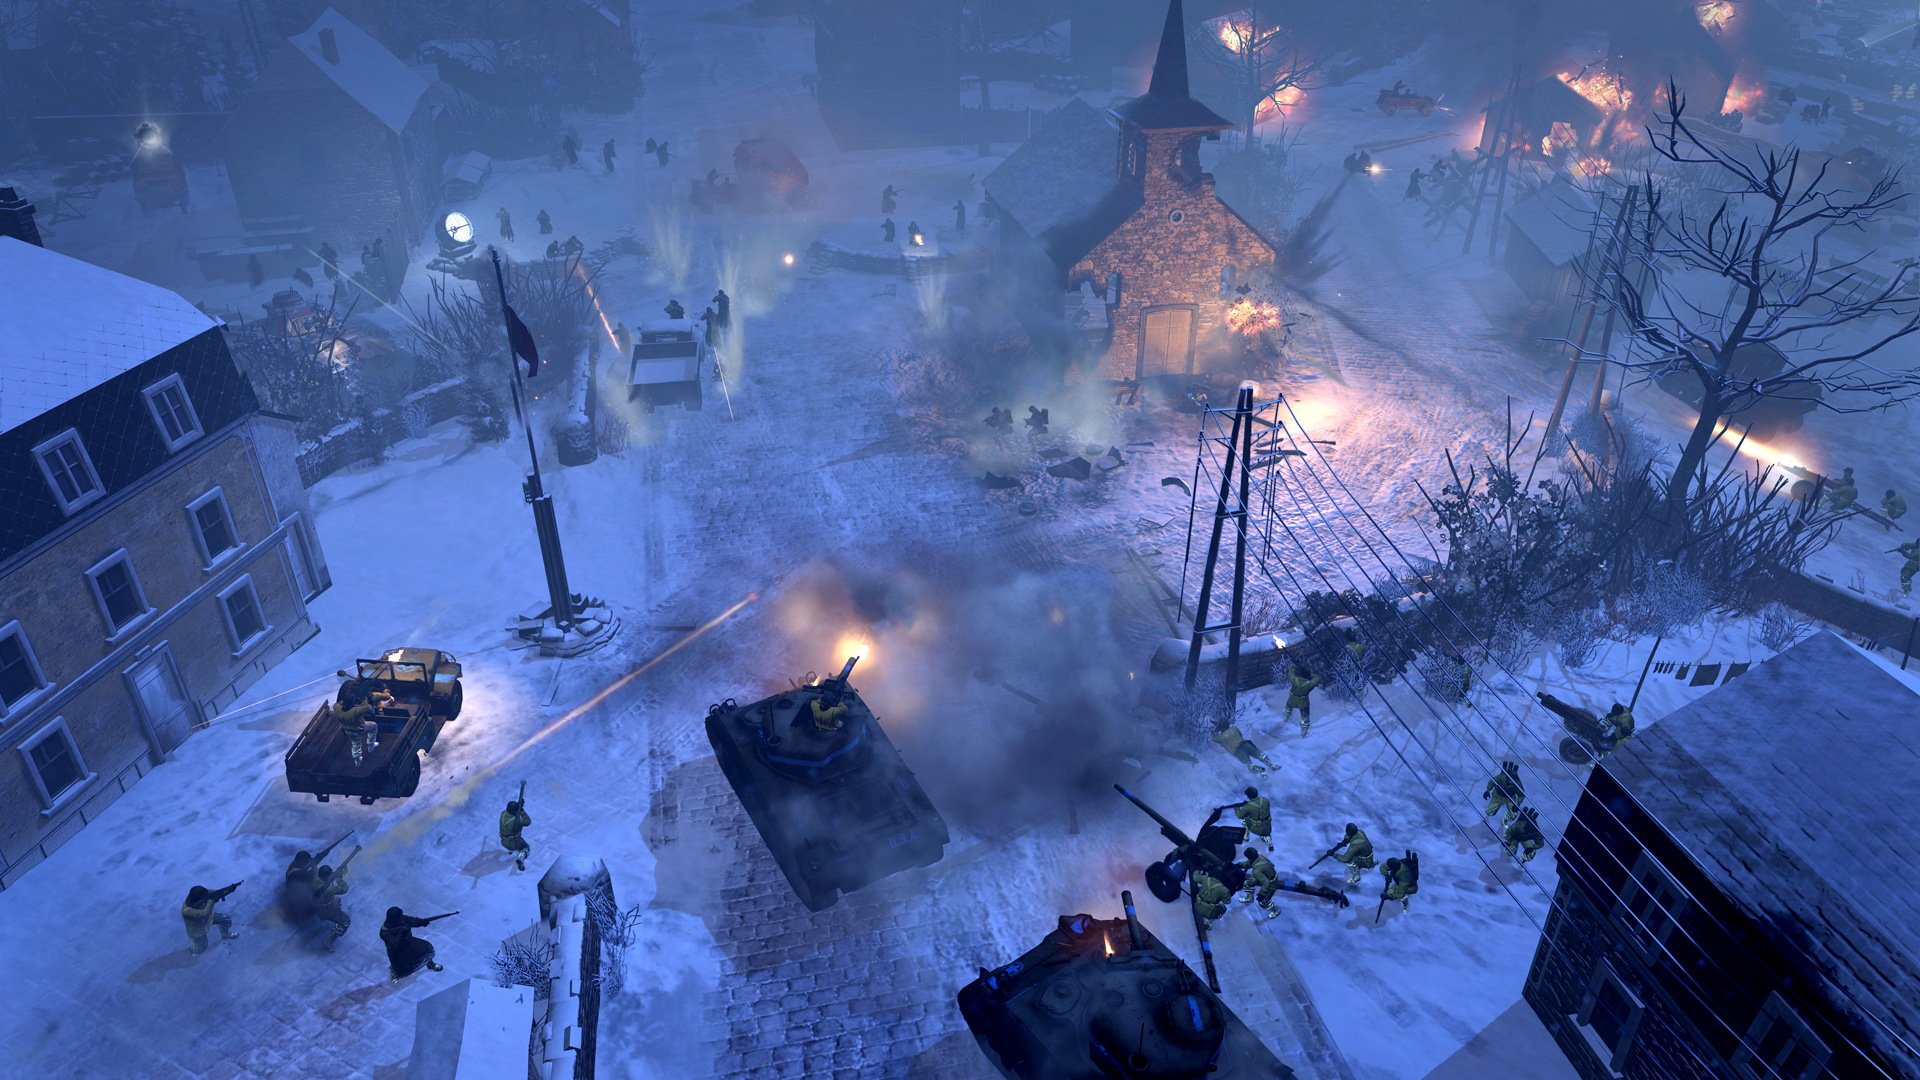 aa screenshot 2 - Company of Heroes 2: Ardennes Assault Review